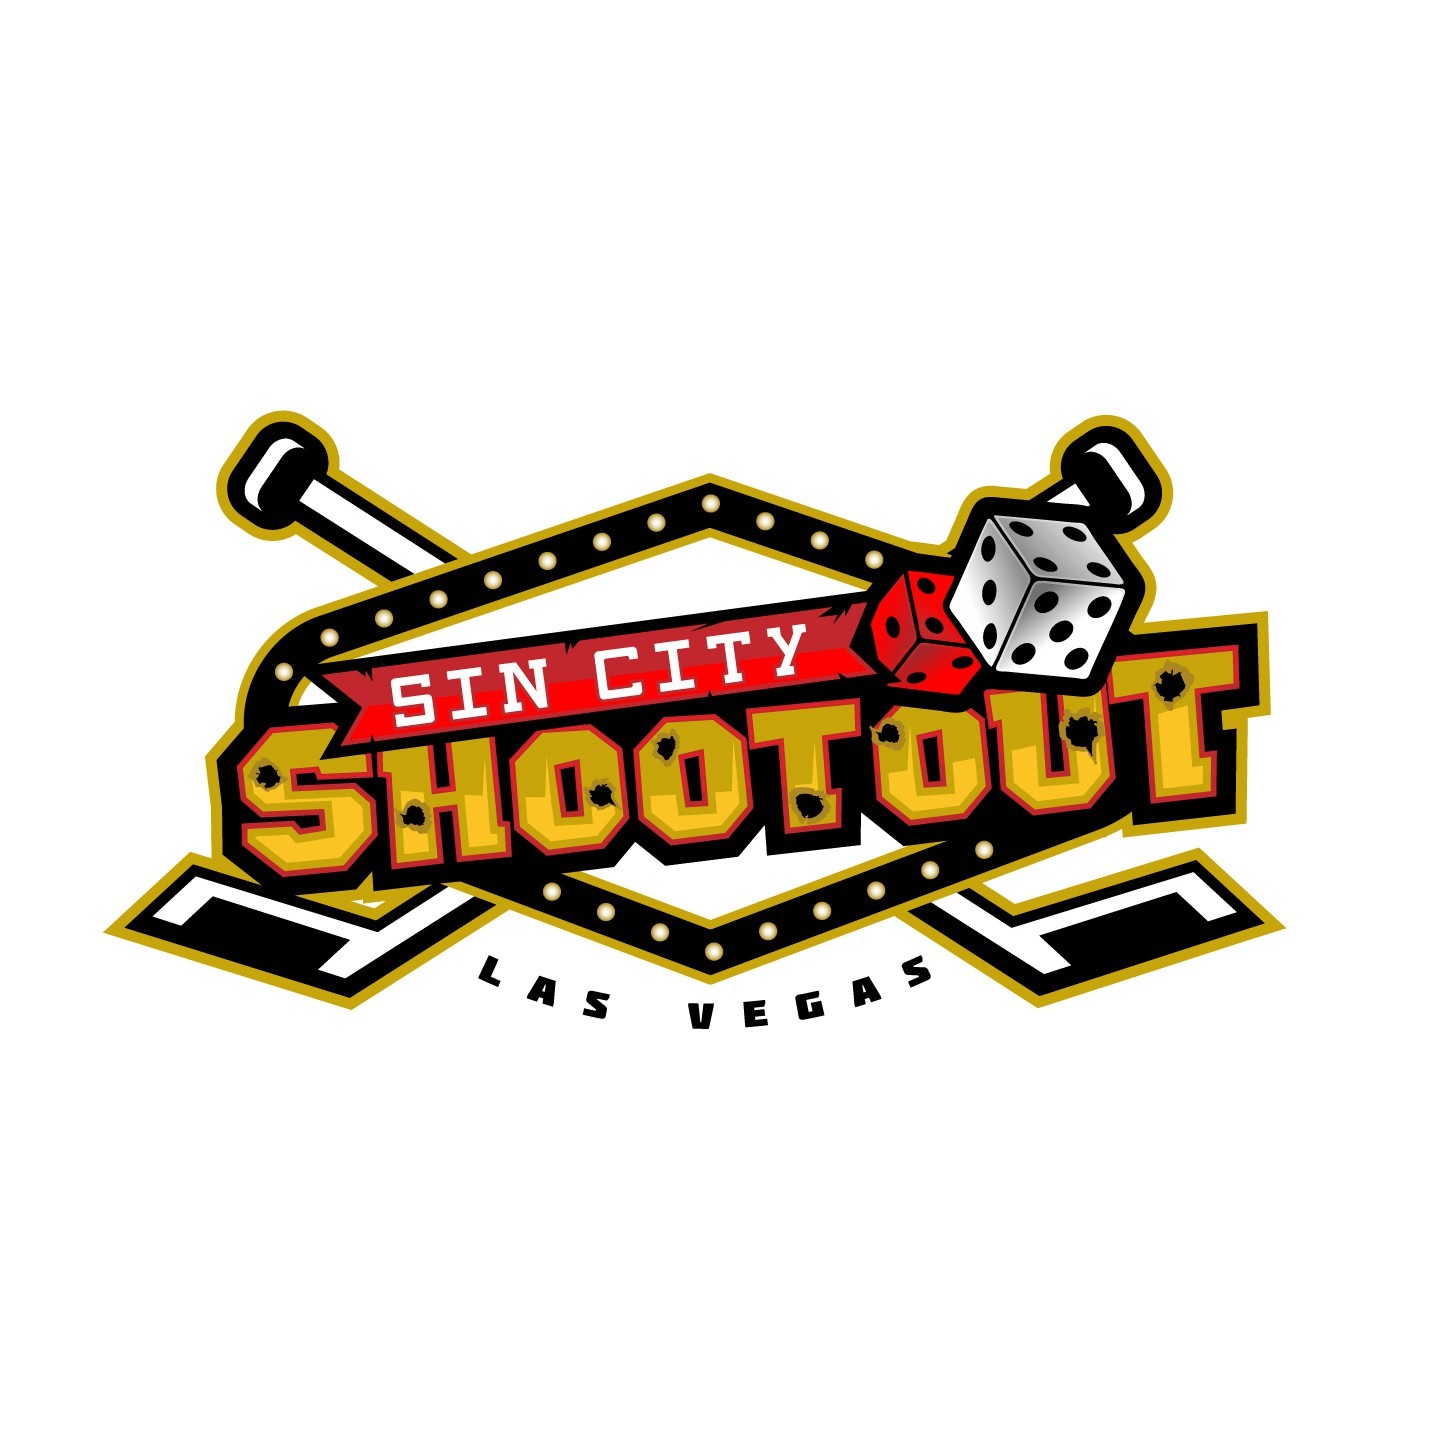 Las Vegas themed logo needed for the Sin City Shootout